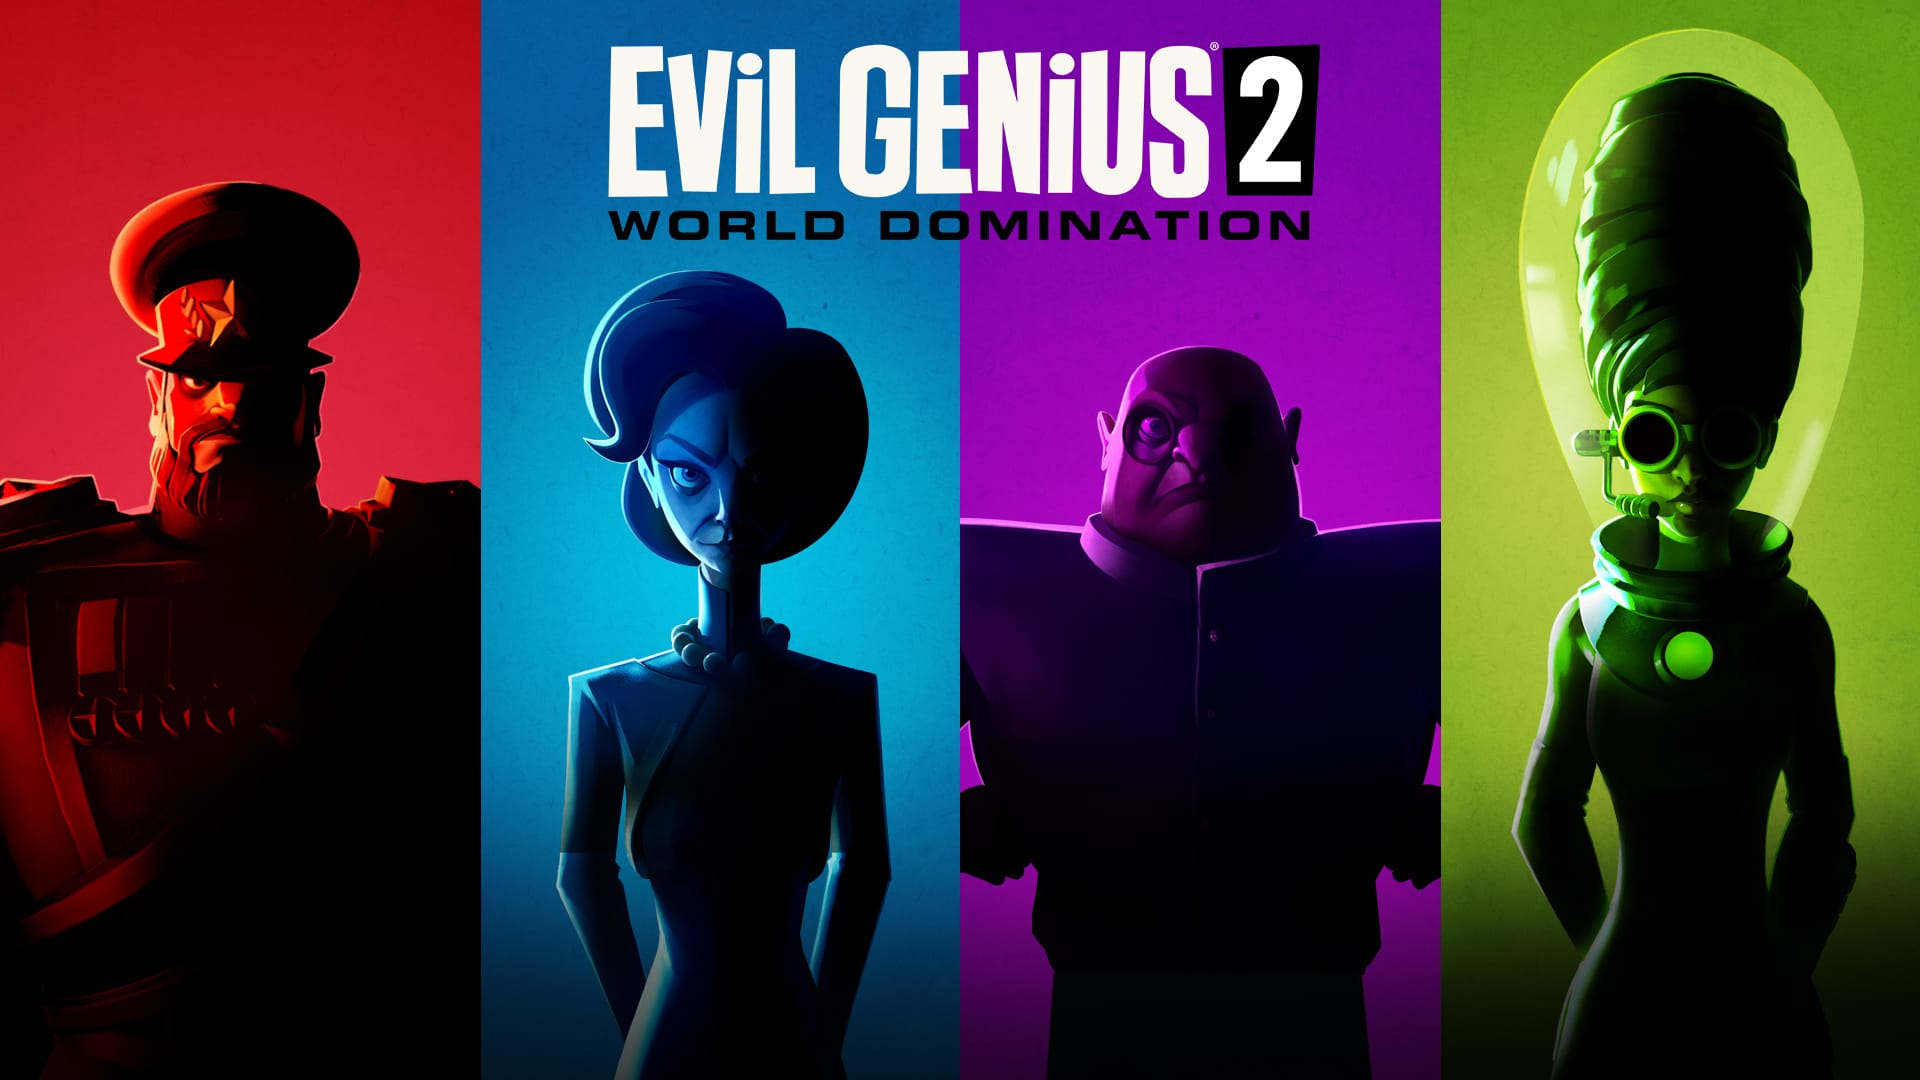 EViL GENiUS 2 - All Characters